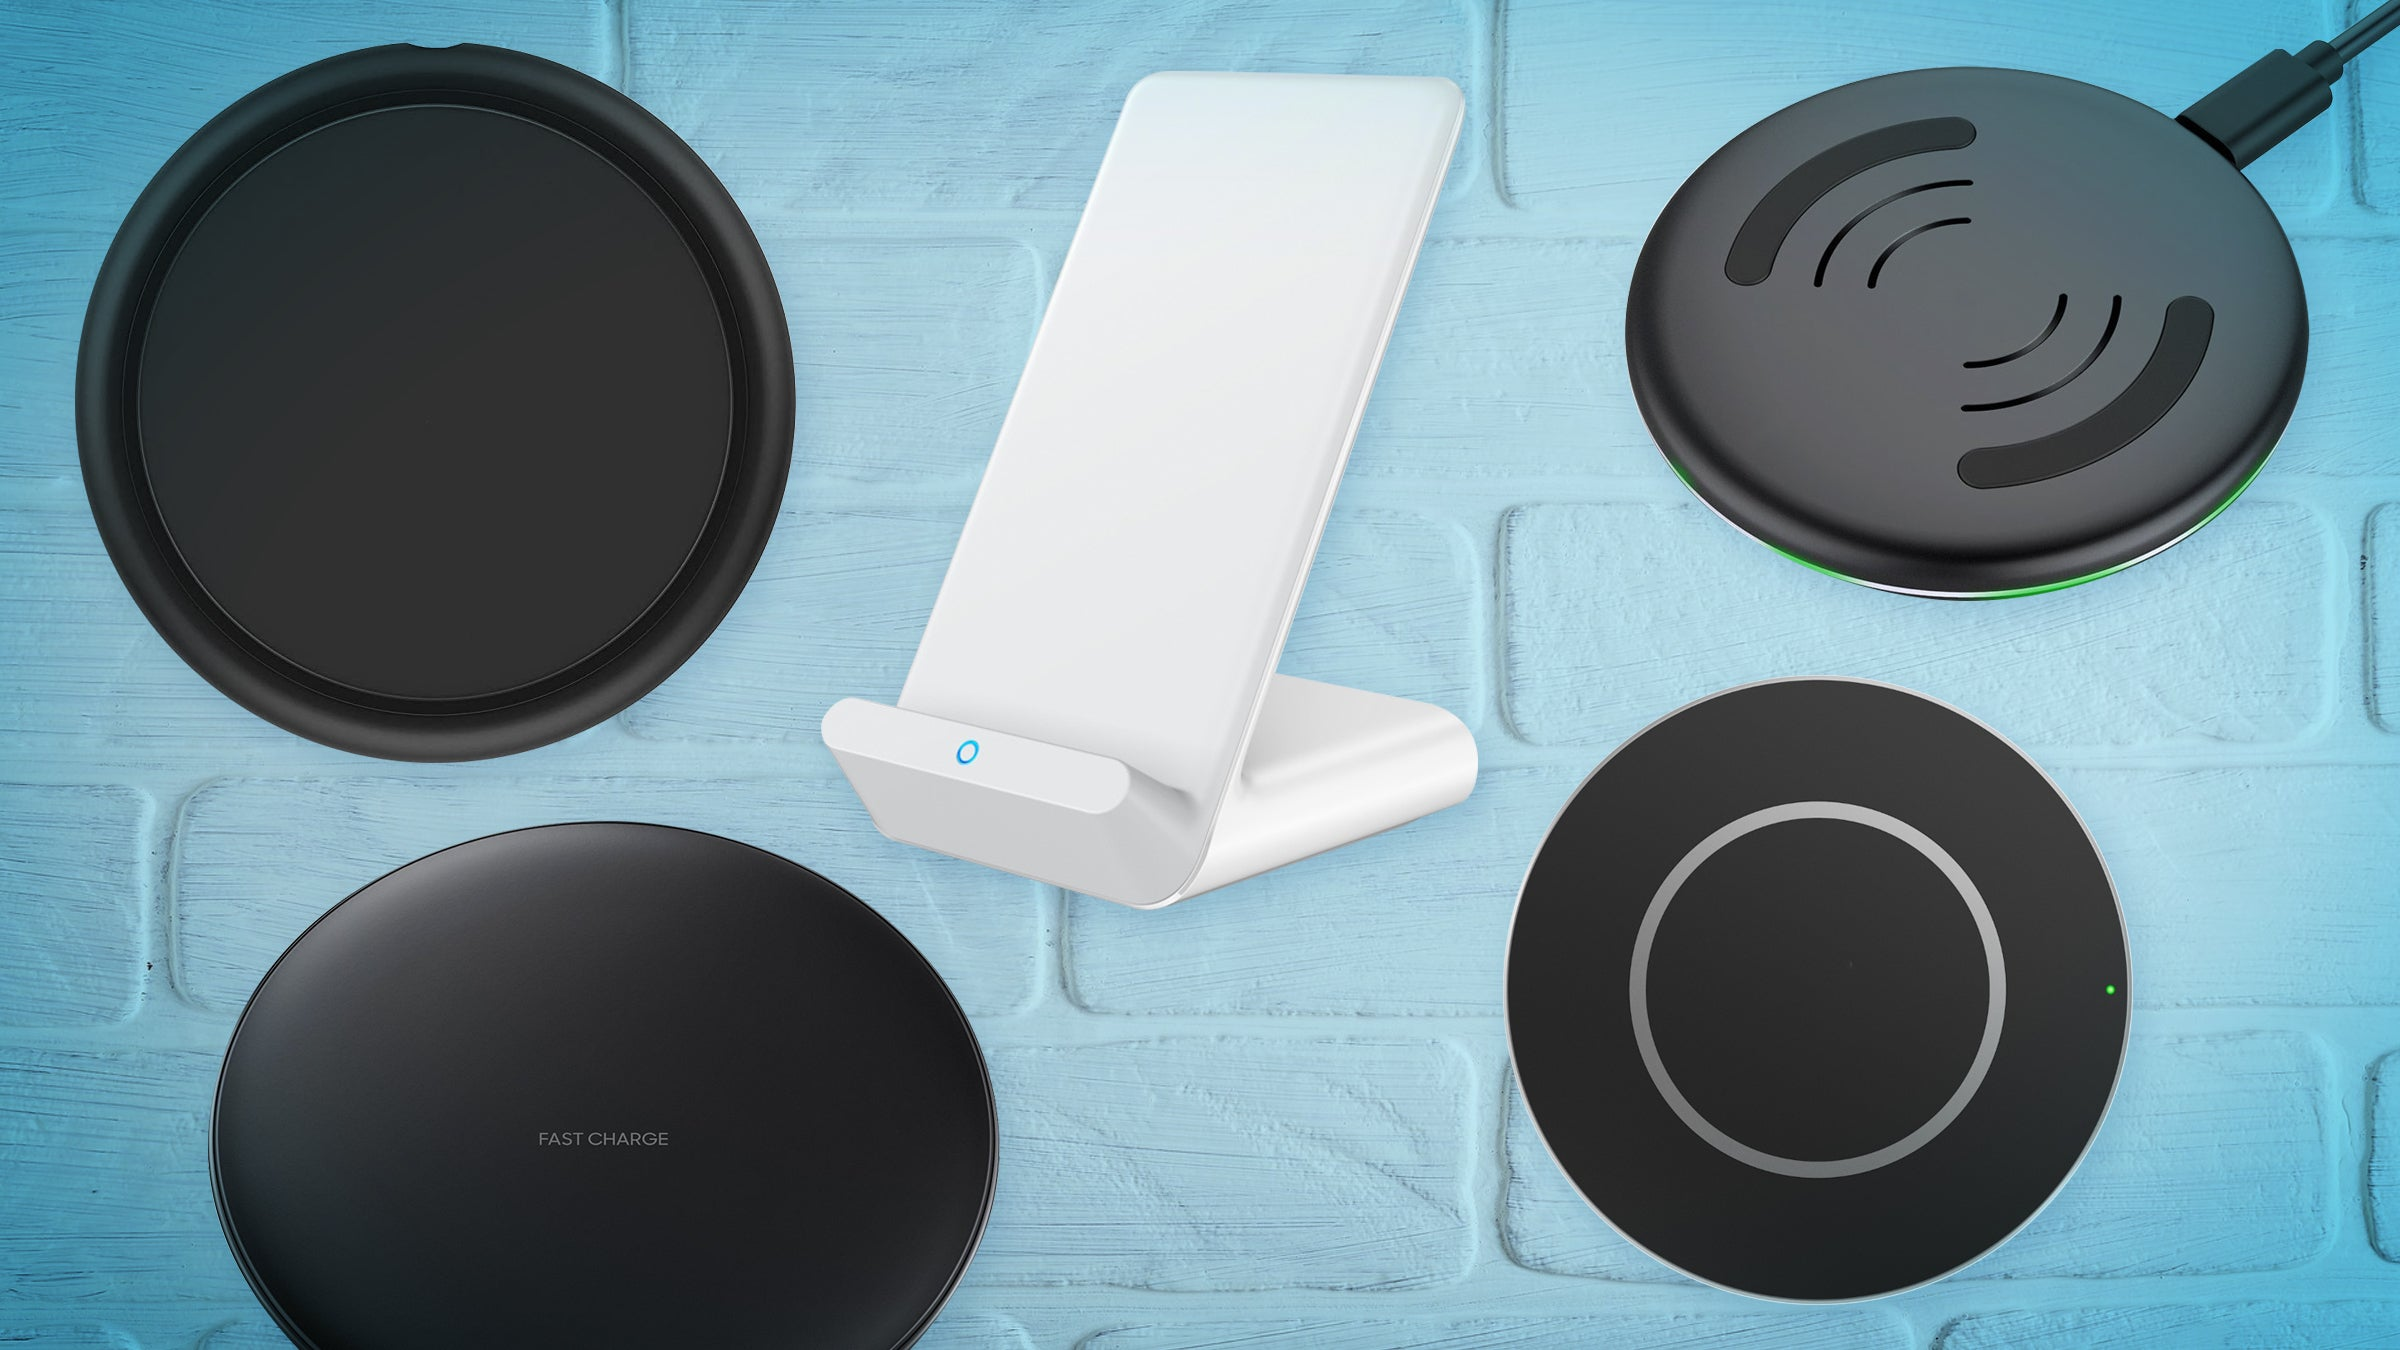 Home Cameras Your Security Wireless